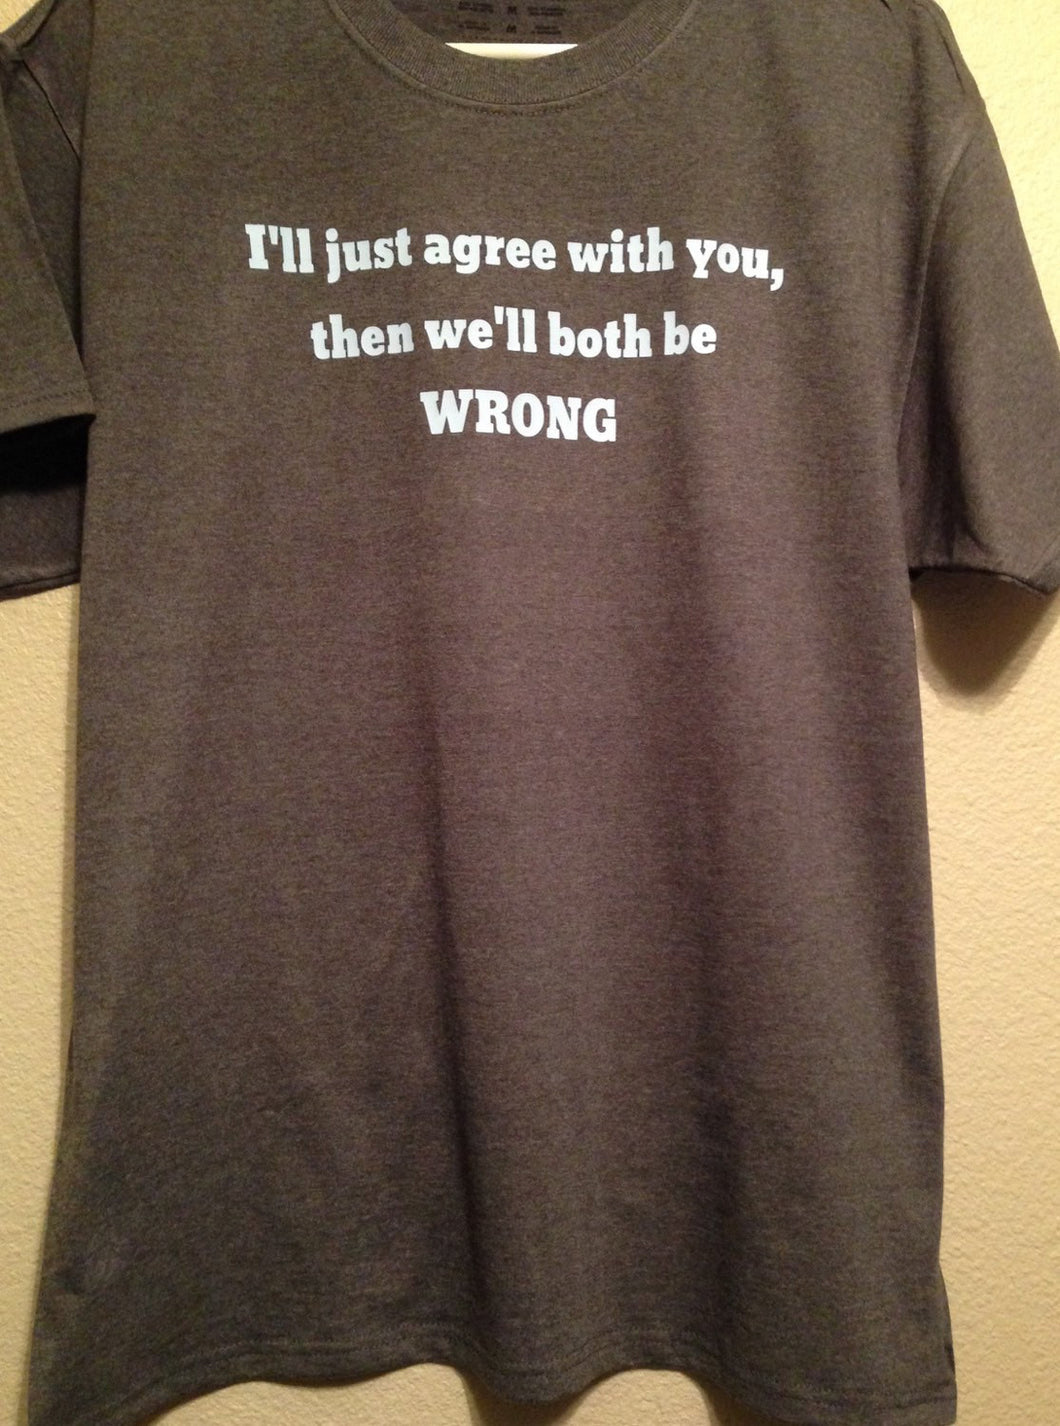 I'll Just Agree With You Then We'll Both Be Wrong | Shirt Tshirt Funny Comical Fun Mens Shirt